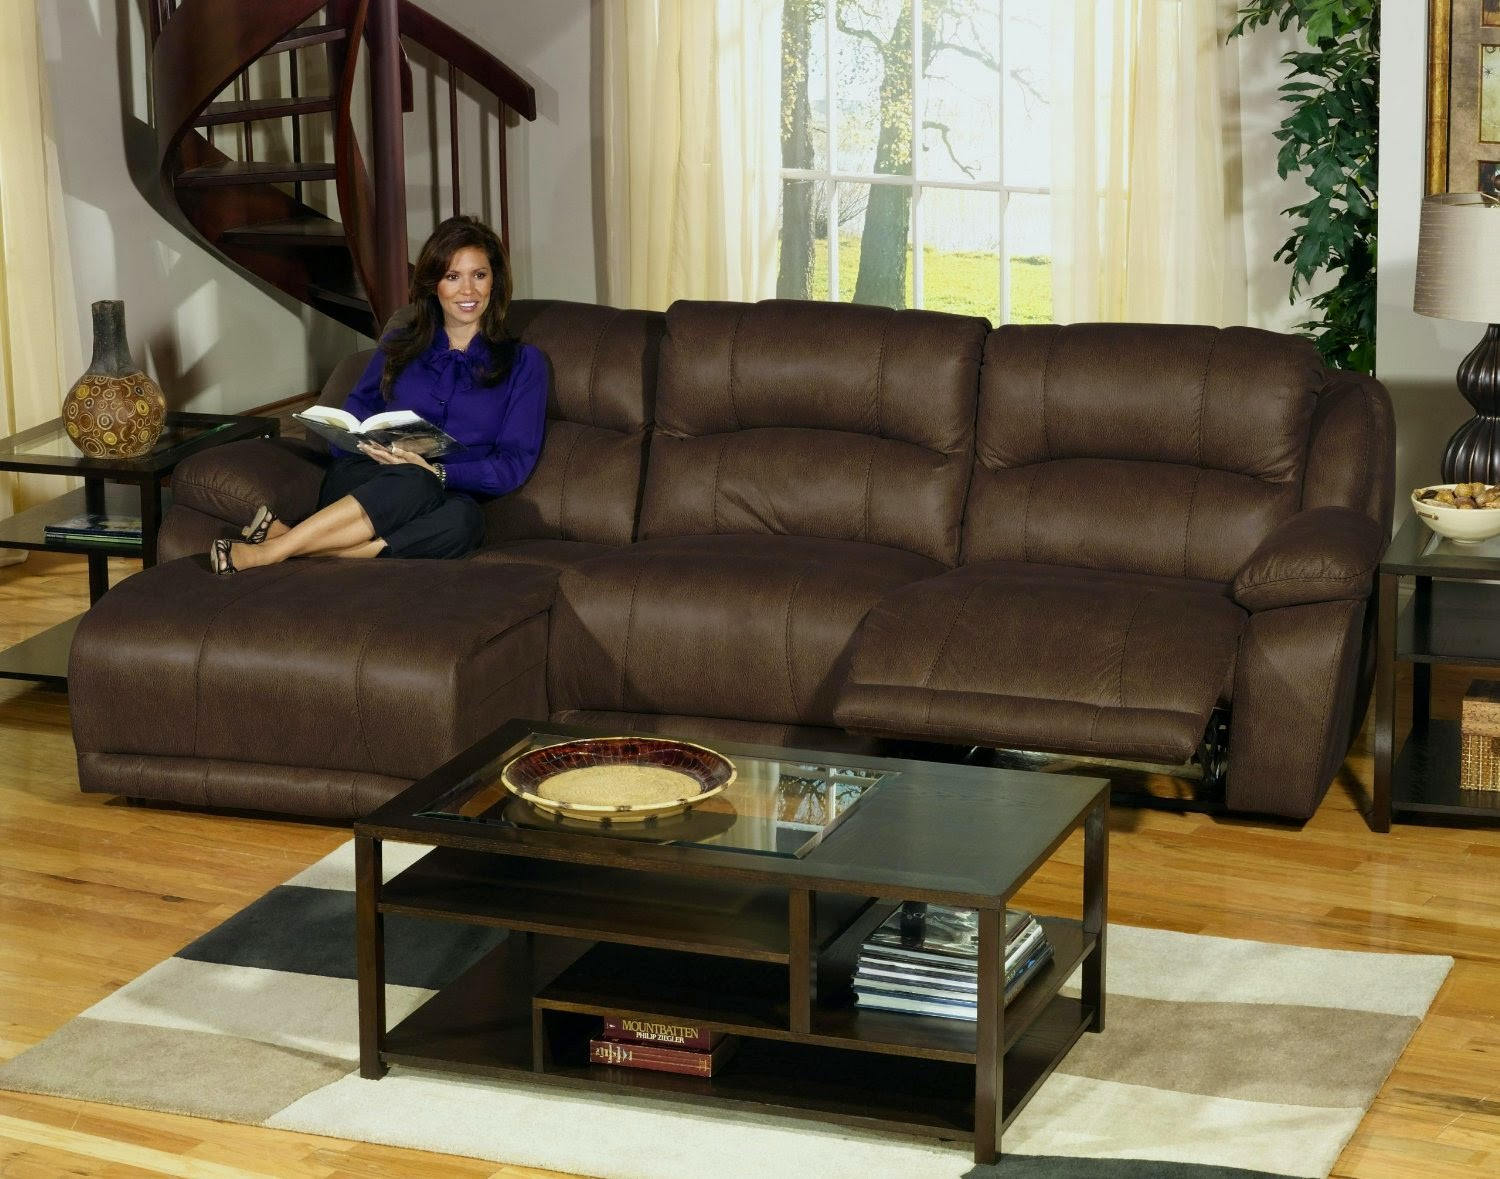 Reclinable Sectional Sofas Chaise Sofa Slipcover Best Reclining For The Money Small